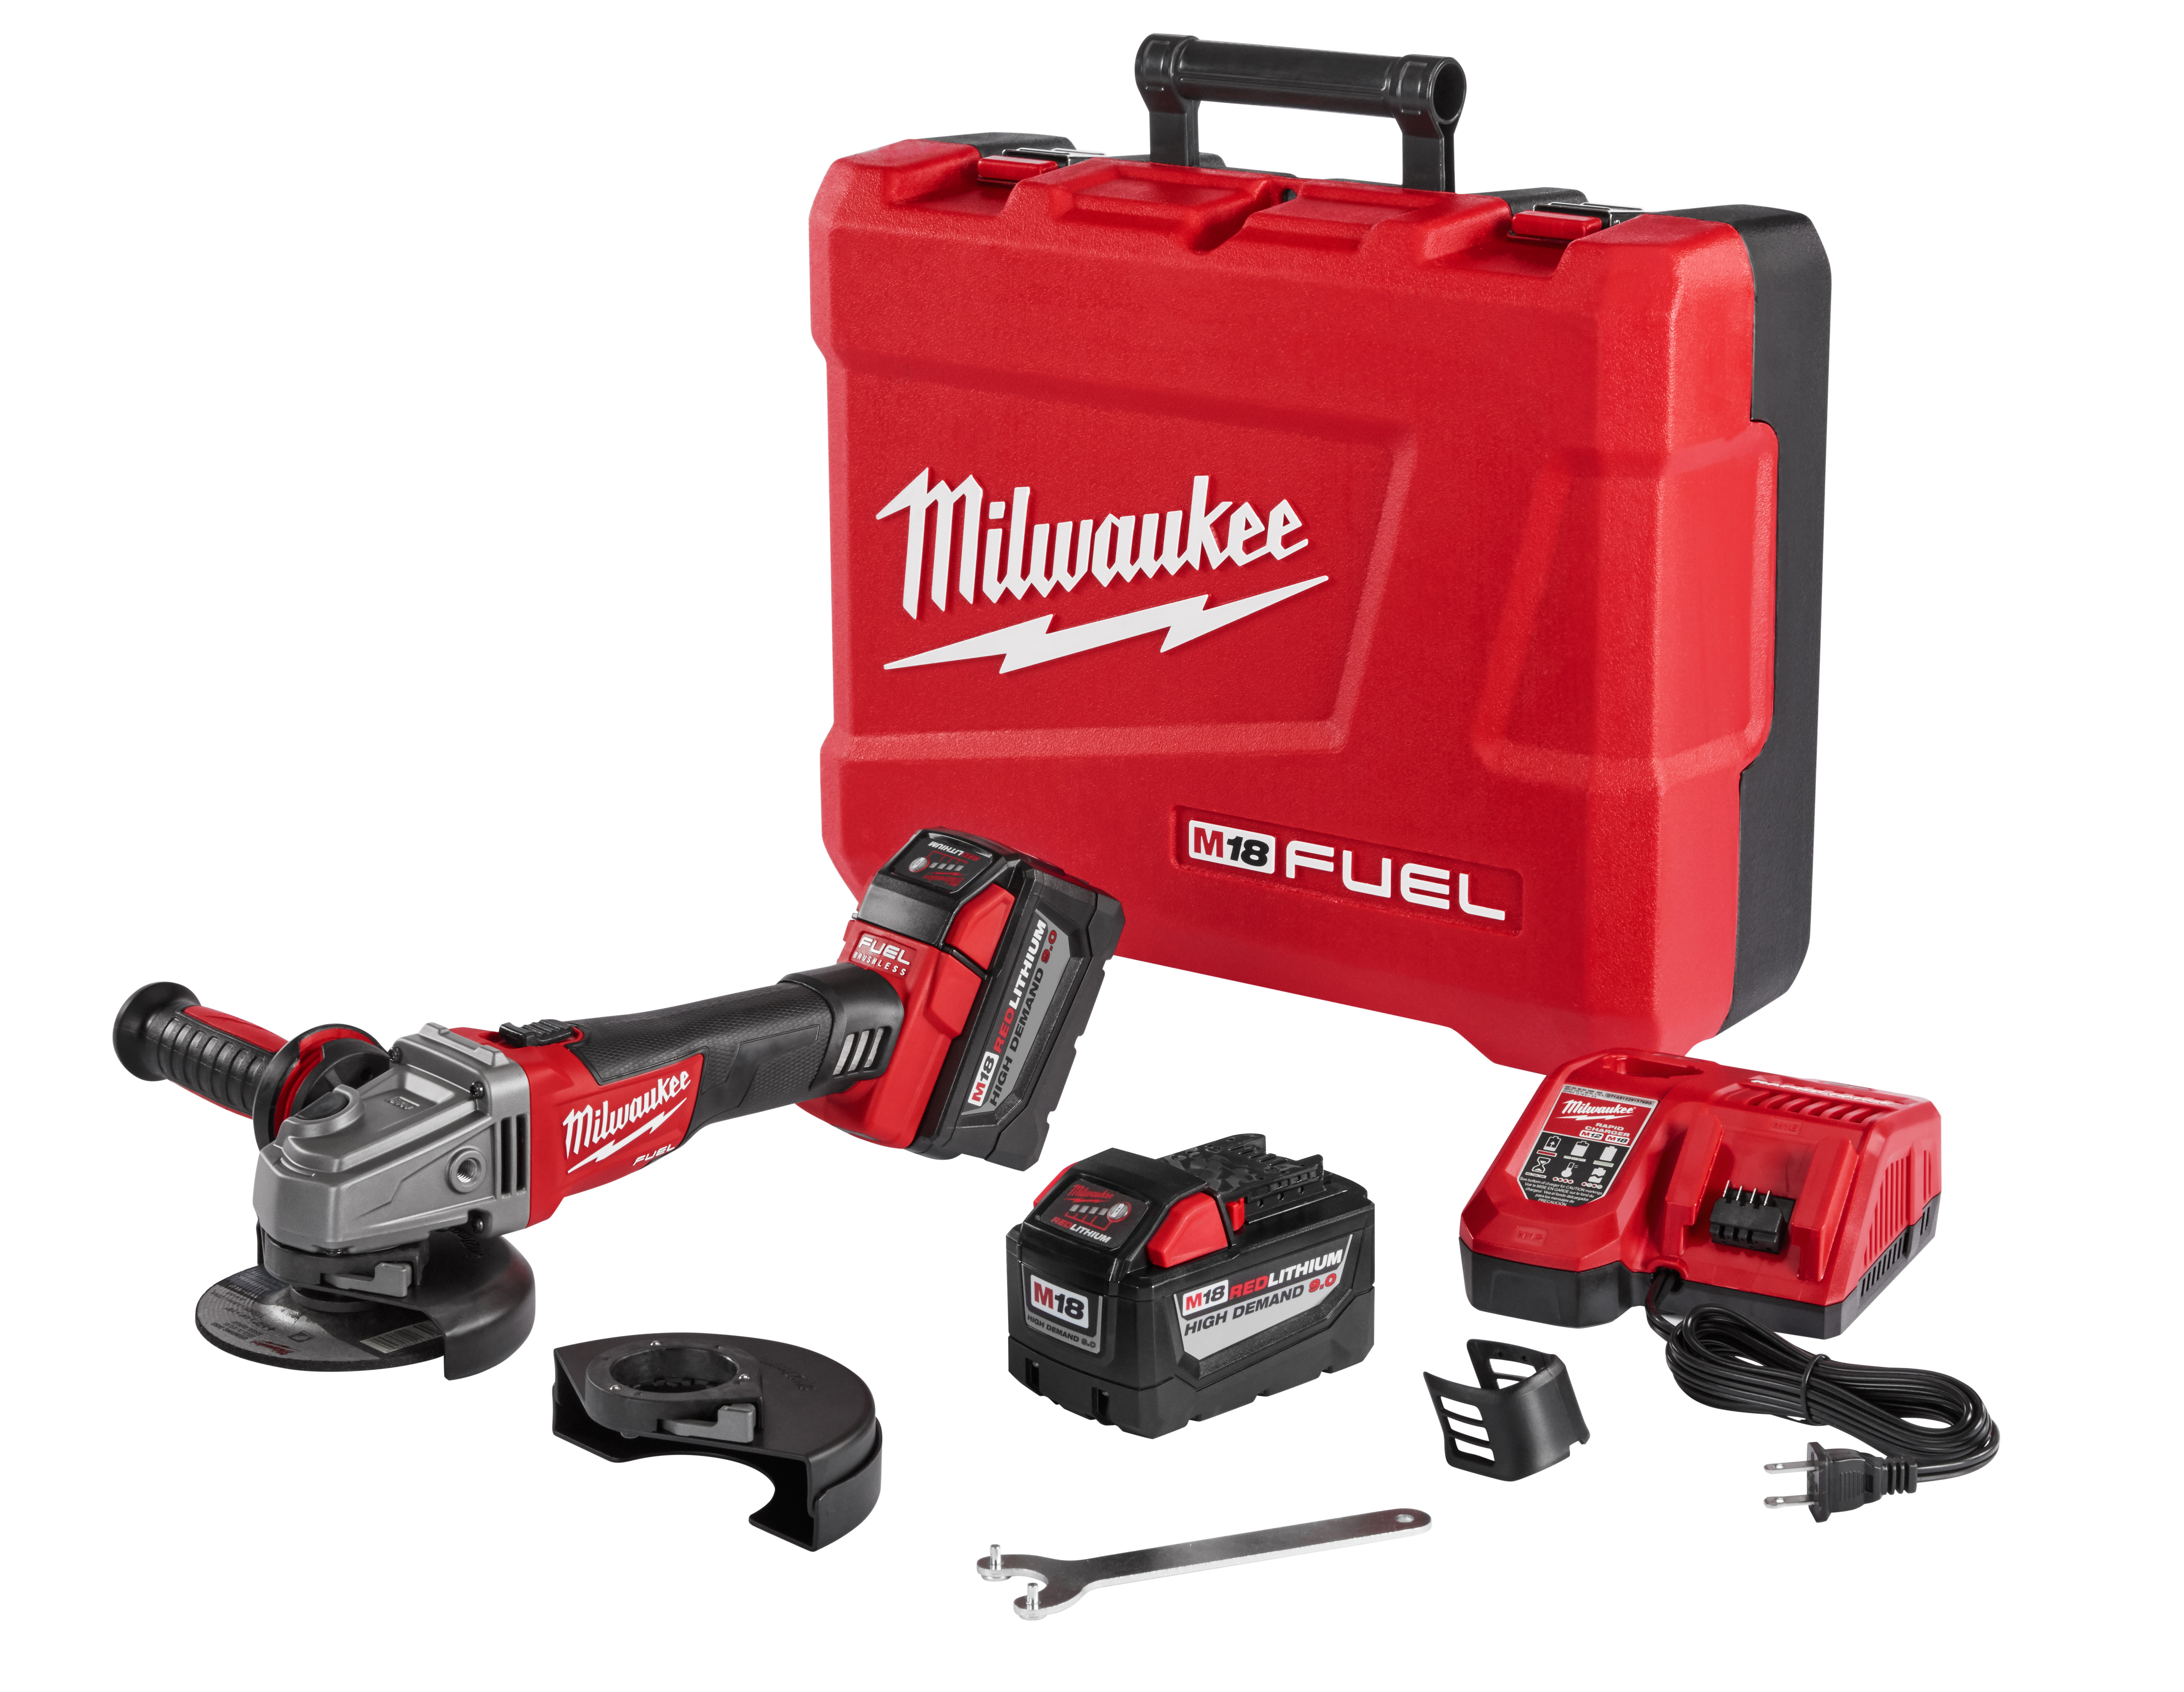 Milwaukee® M18™ FUEL™ 2781-22HD Cordless Angle Grinder Kit, 5 in Dia Wheel, 5/8-11 Arbor/Shank, 18 VDC, Lithium-Ion Battery, 2 Batteries, Slide with Lock-On Switch